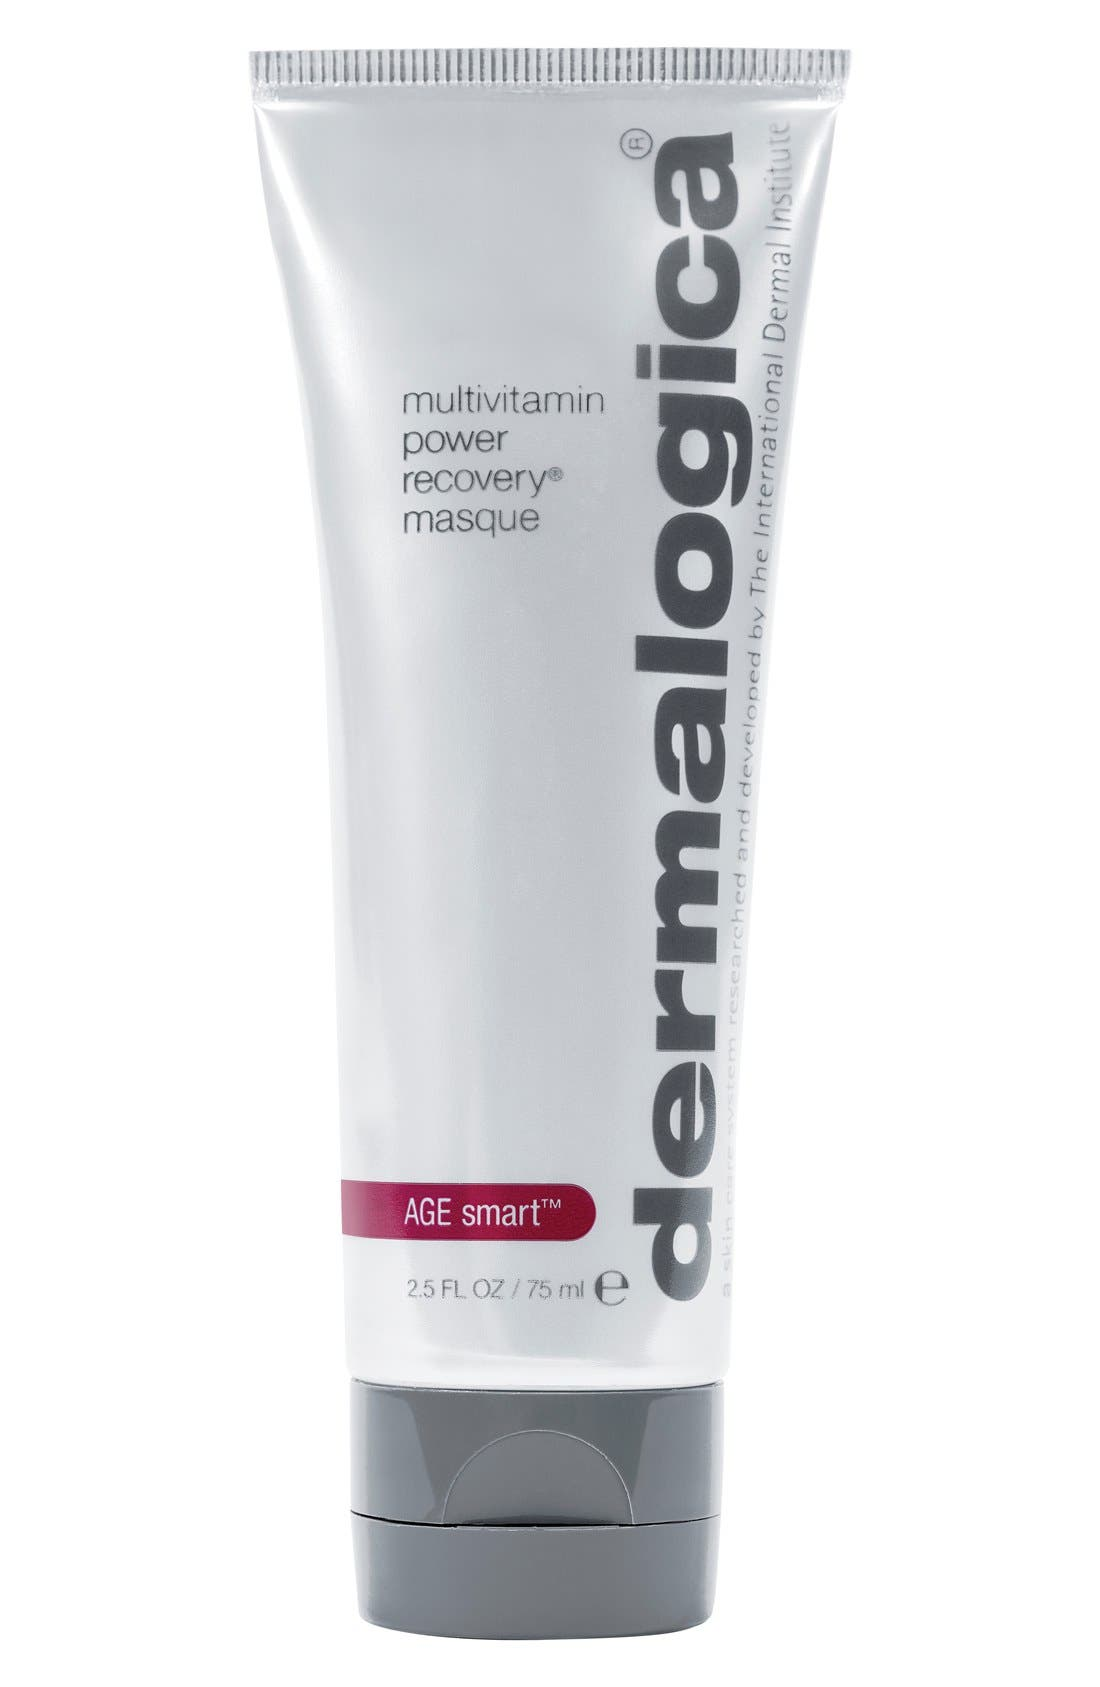 dermalogica® Multivitamin Power Recovery Masque